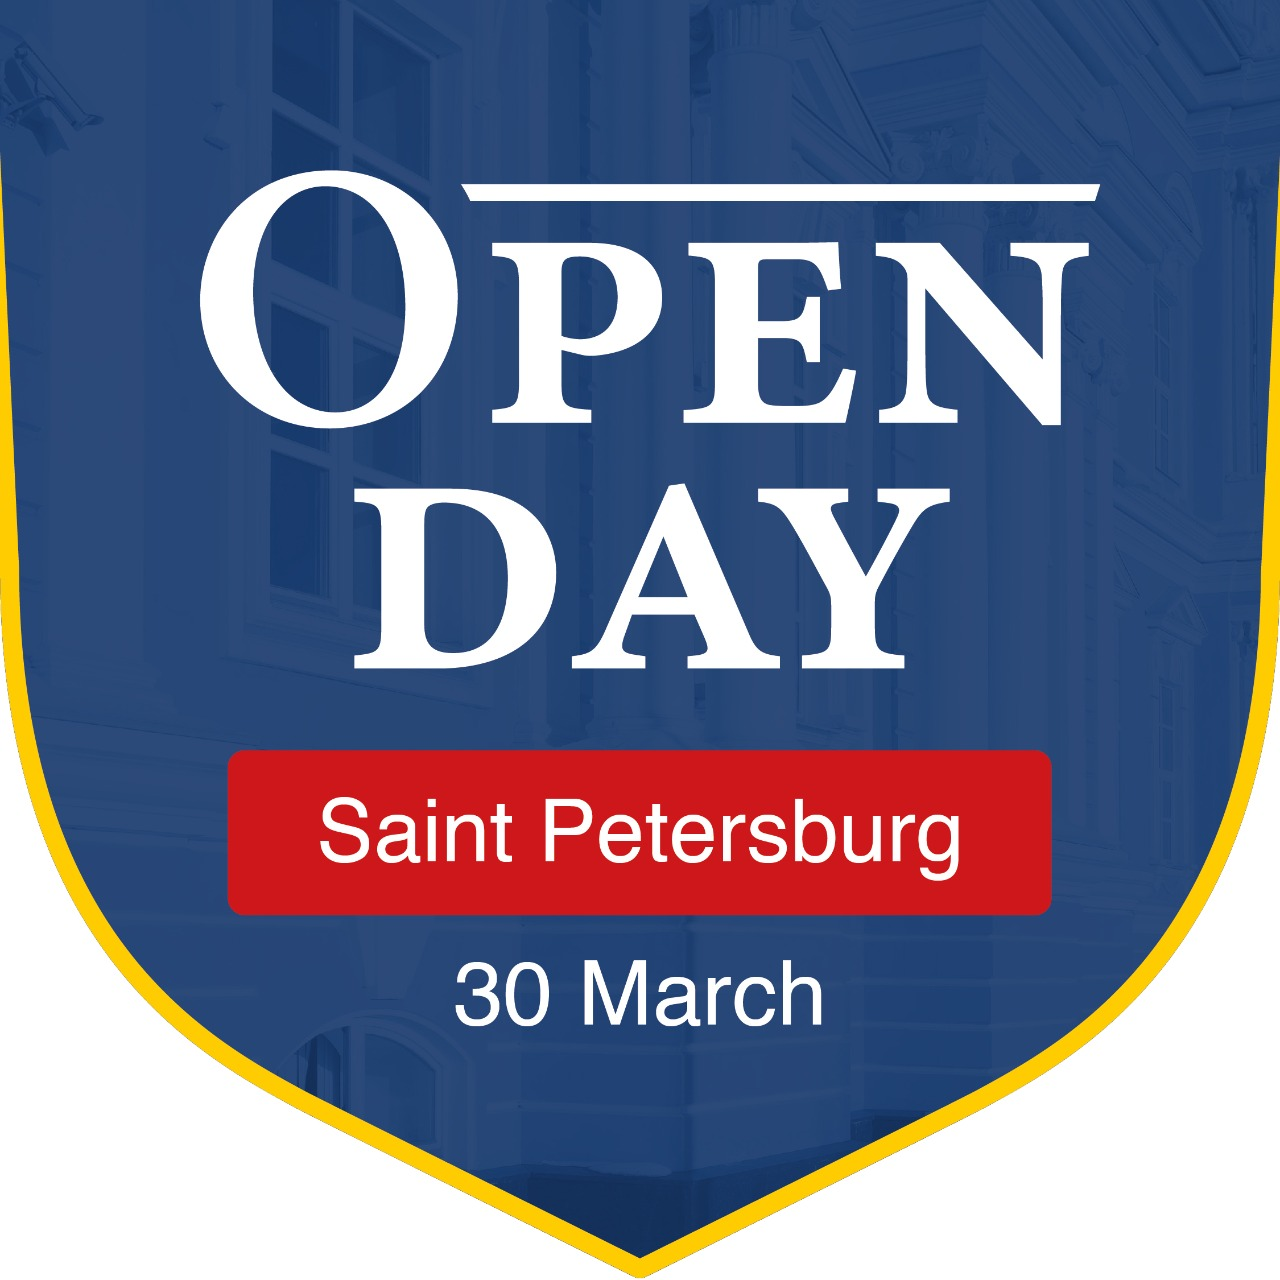 Open Day at CIS Saint Petersburg